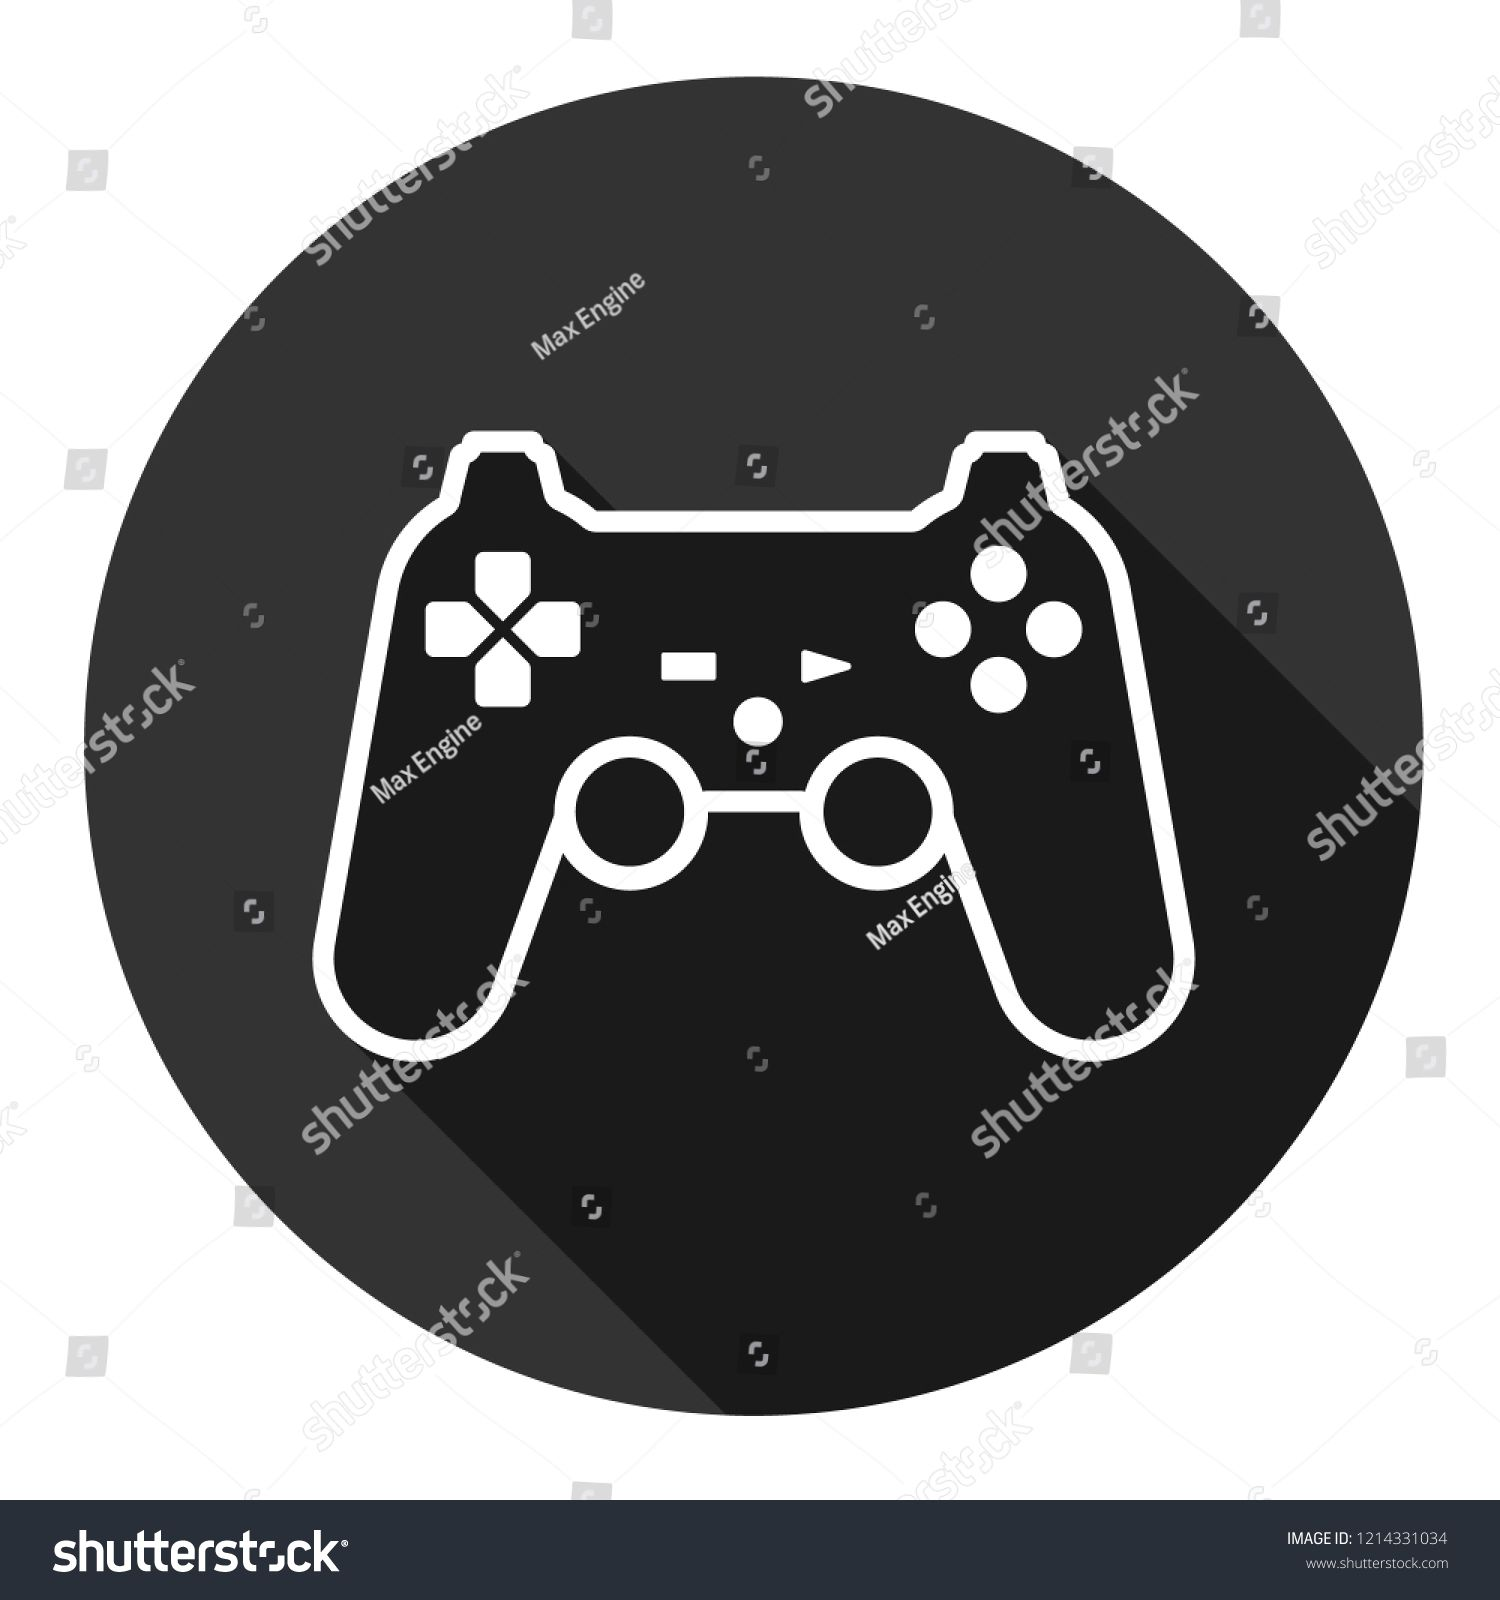 Game pad vector icon. Joystick sign. Joystick icon. EPS 10